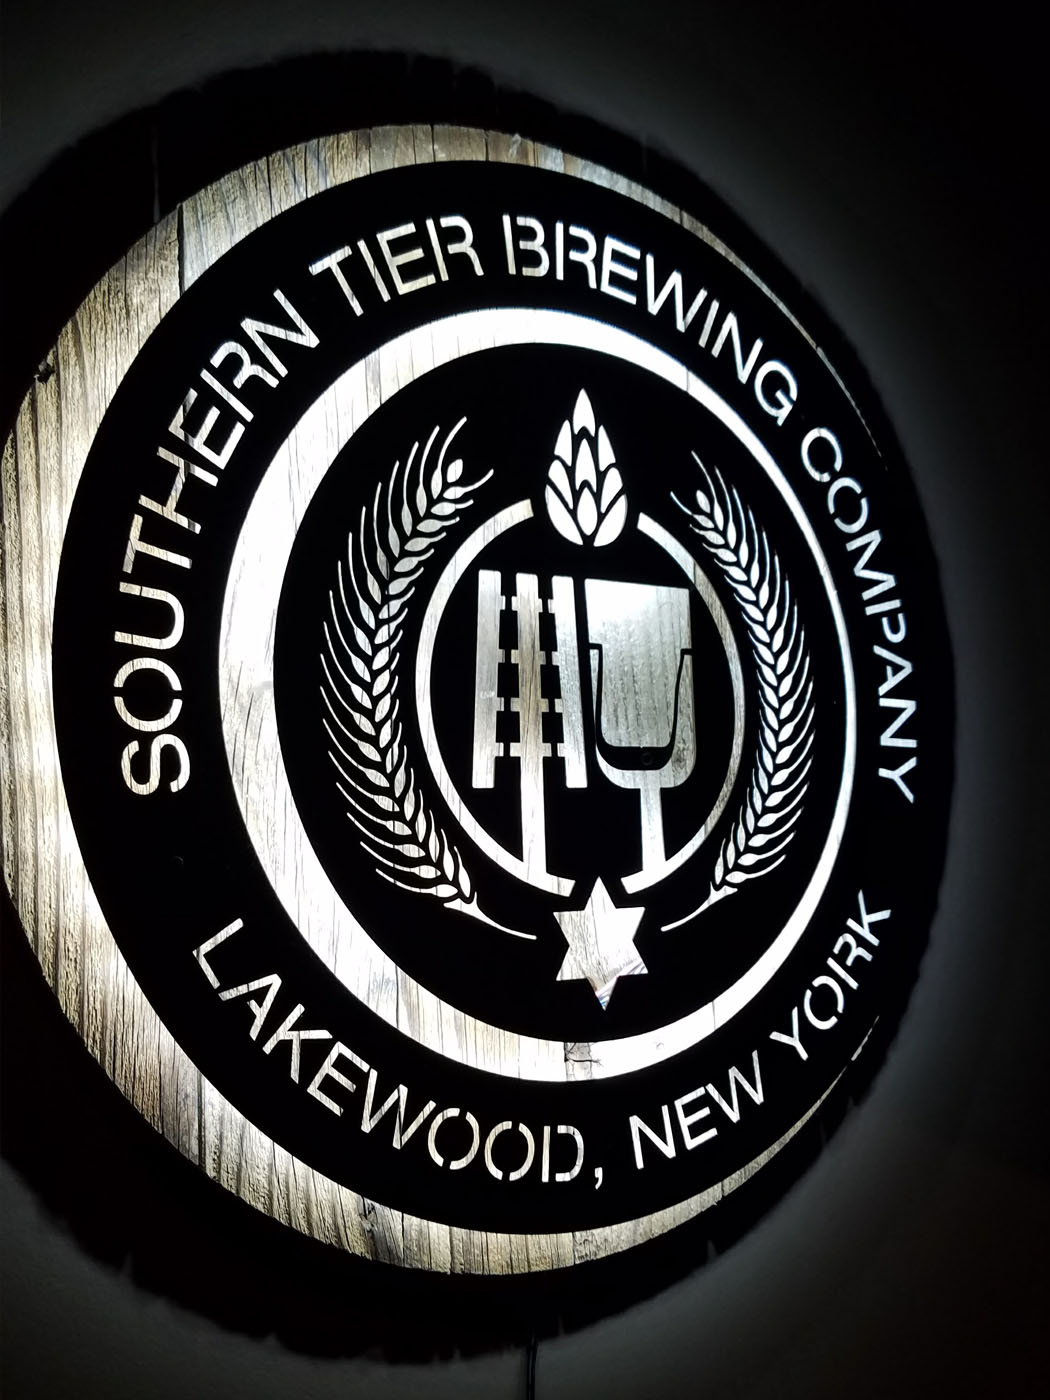 An illuminated sign at Southern Tier brewery in Lakewood, New York